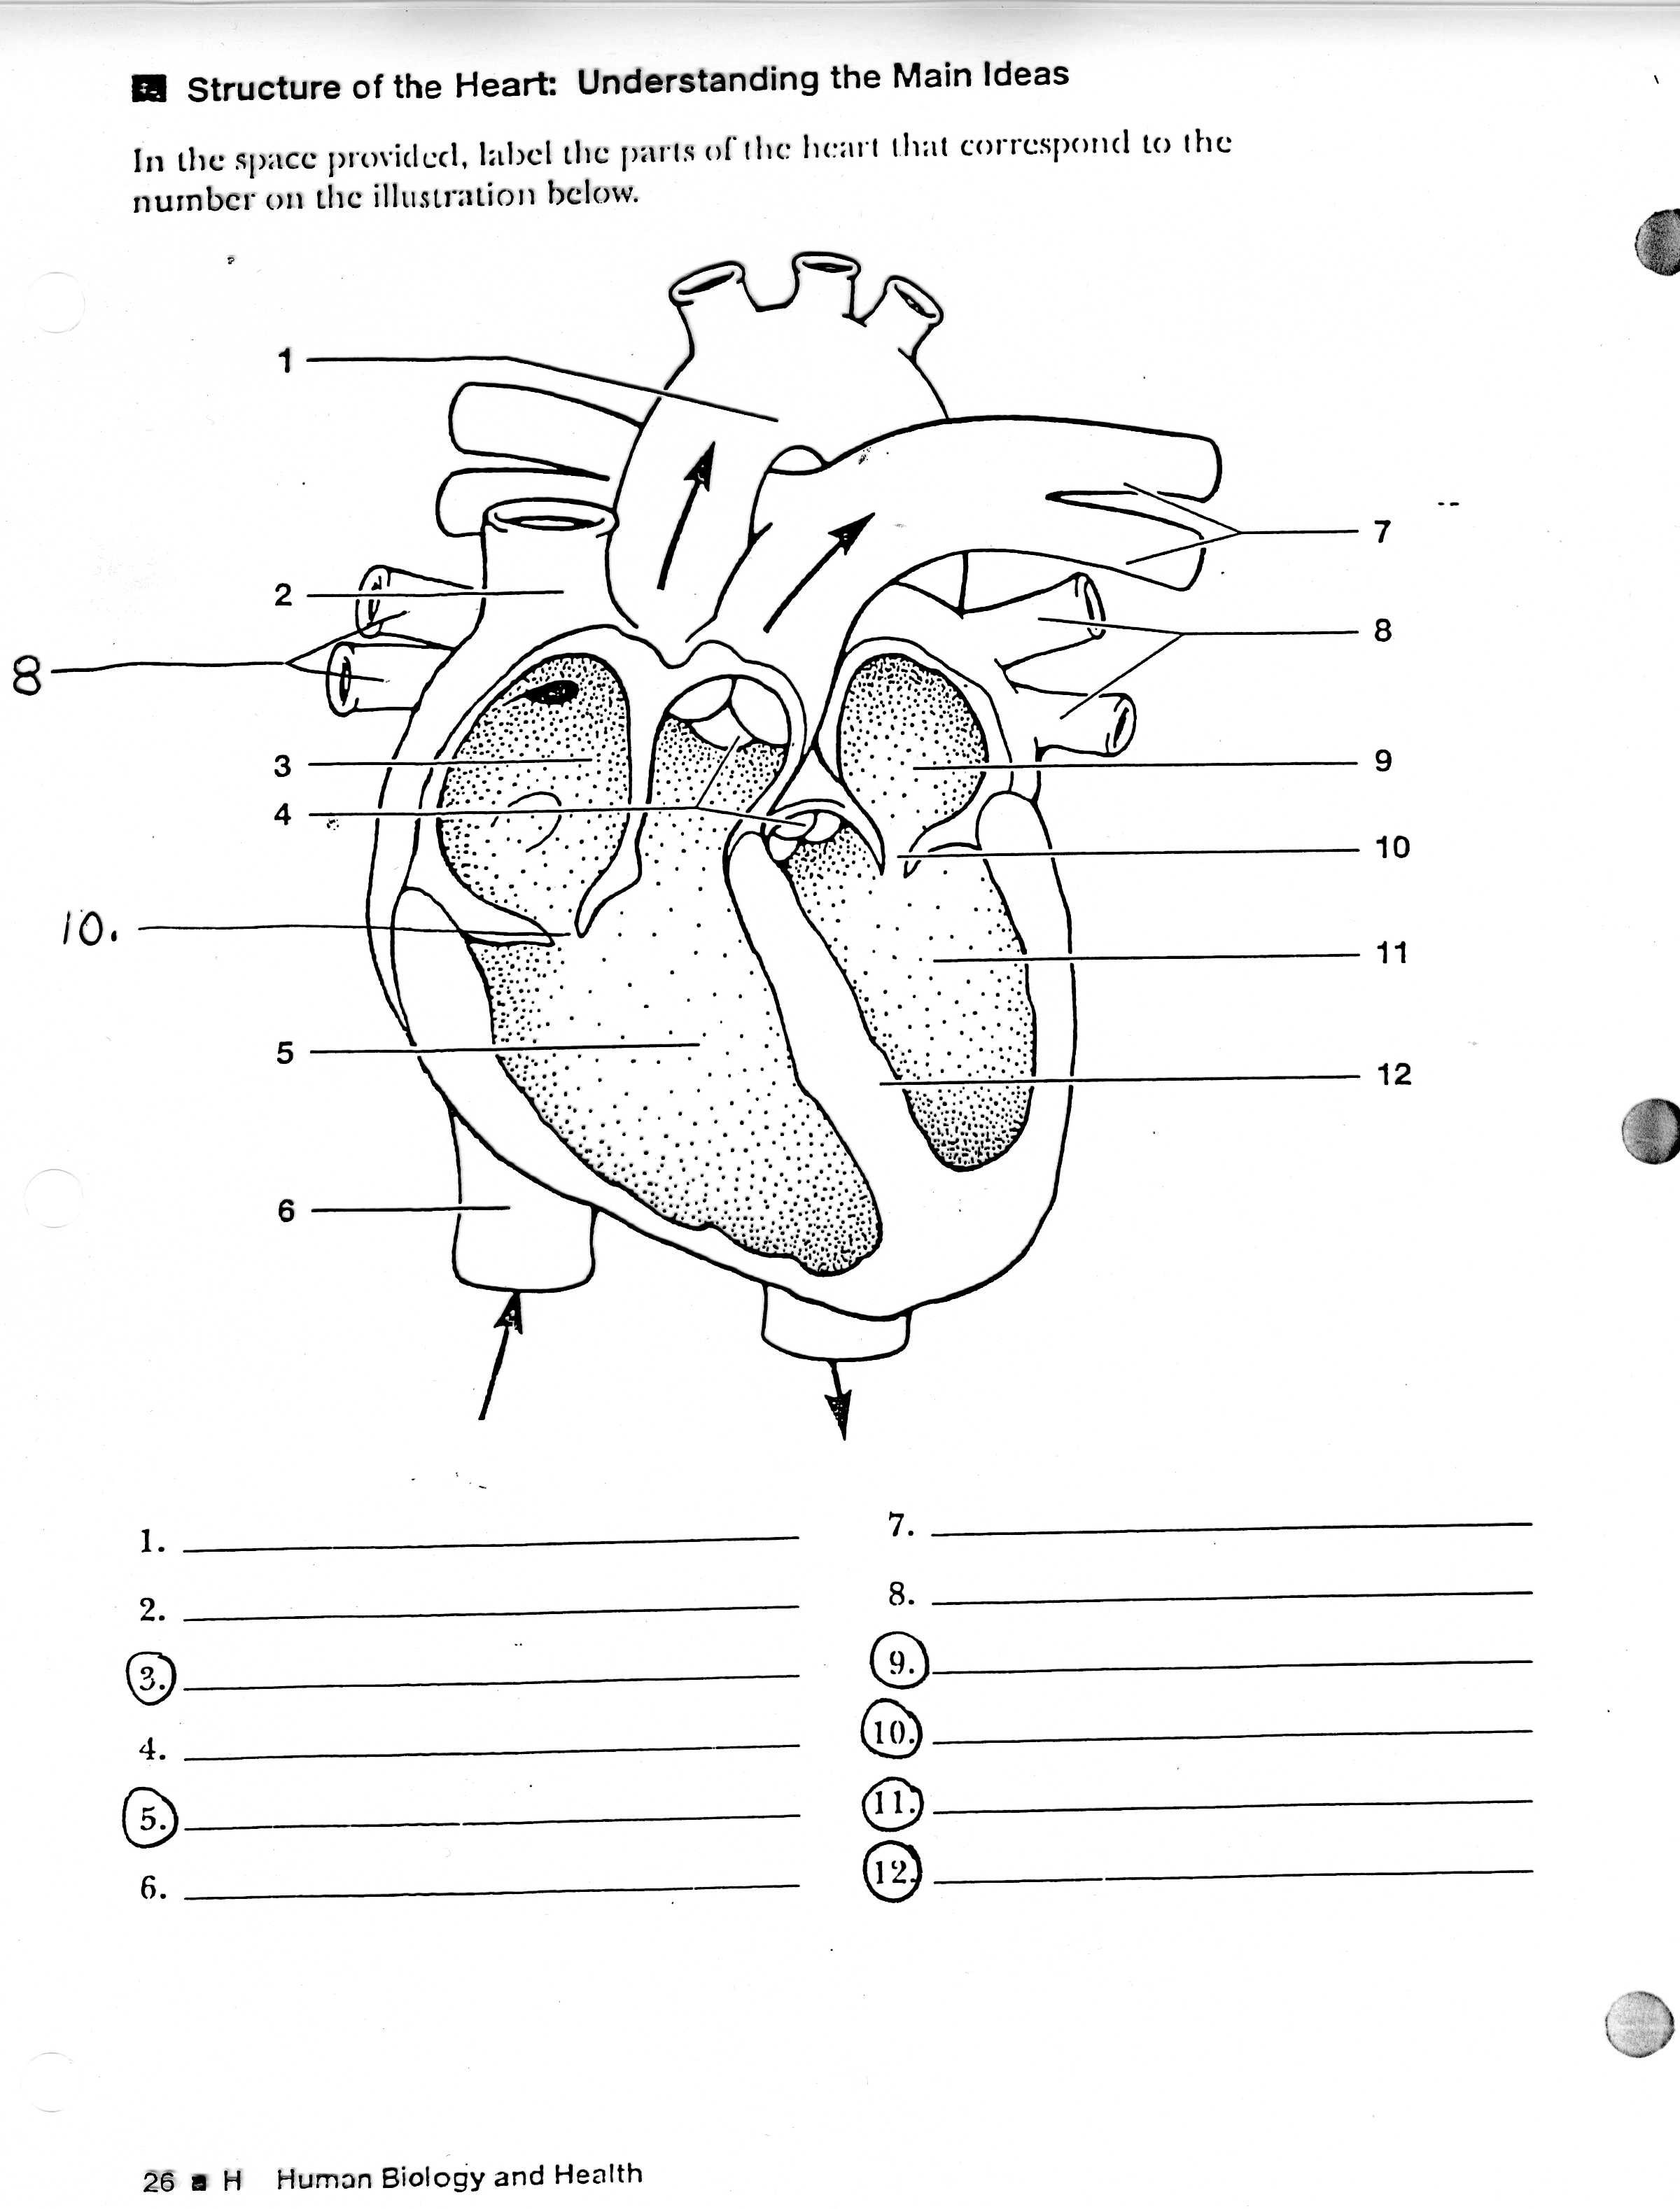 Blank human heart diagram learning me pinterest human heart blank human heart diagram pooptronica Gallery